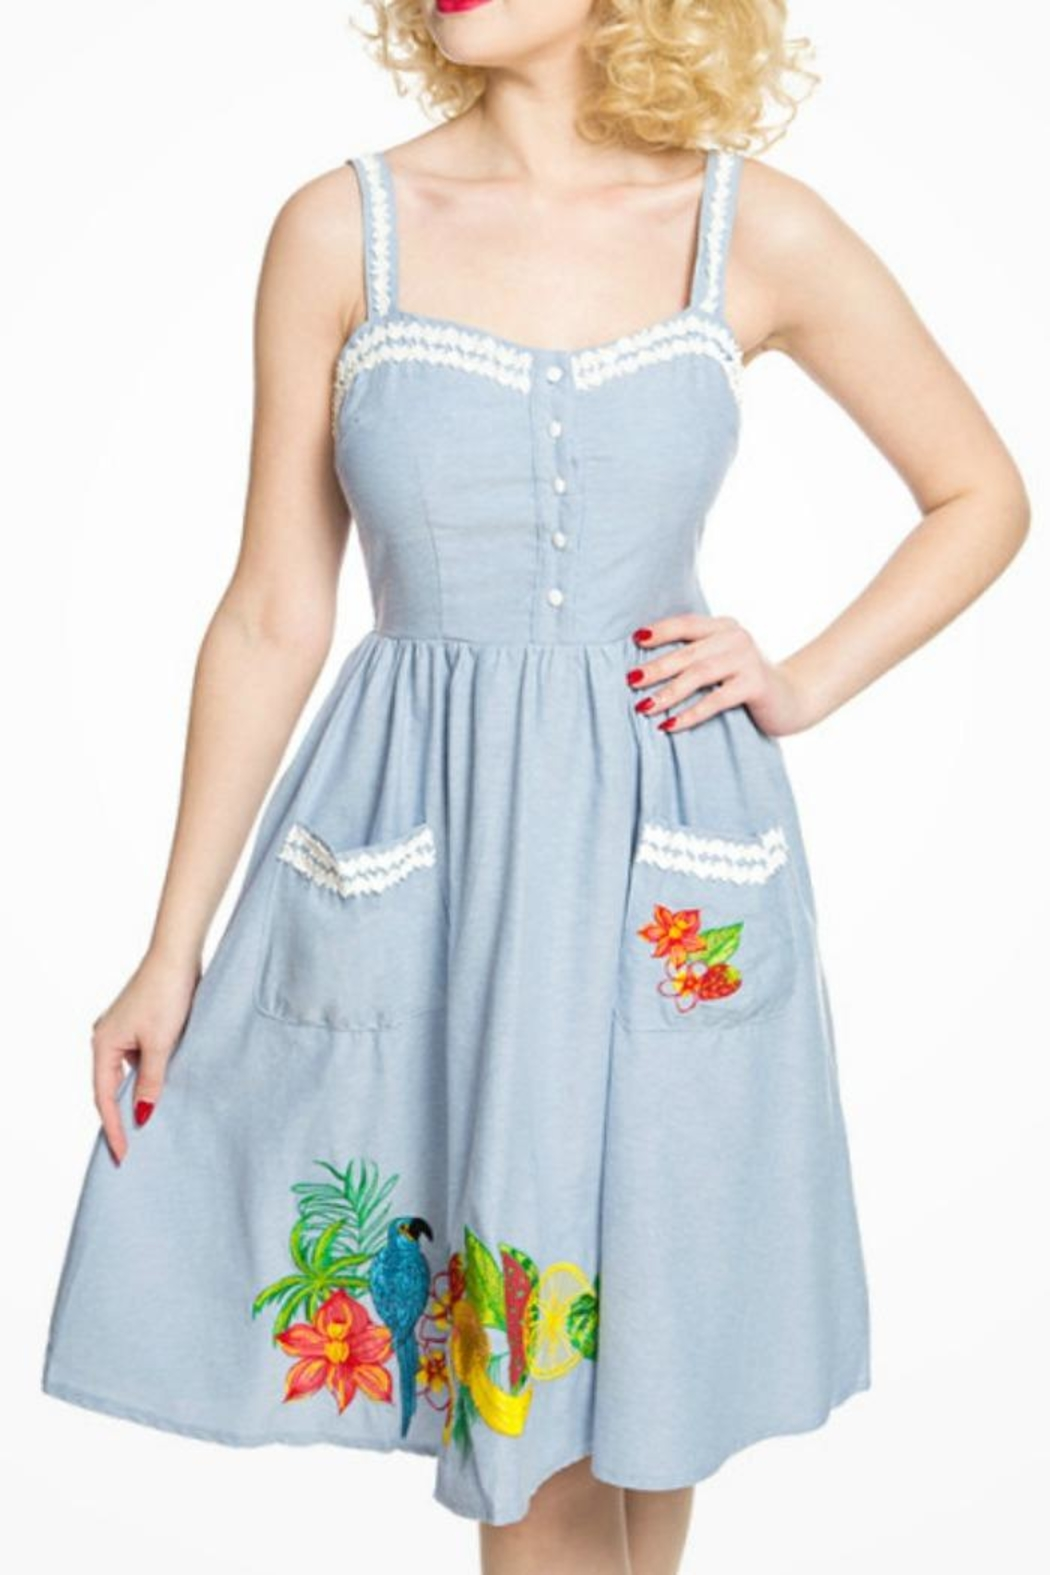 Lindy Bop Tropical Fruit Dress - Front Cropped Image